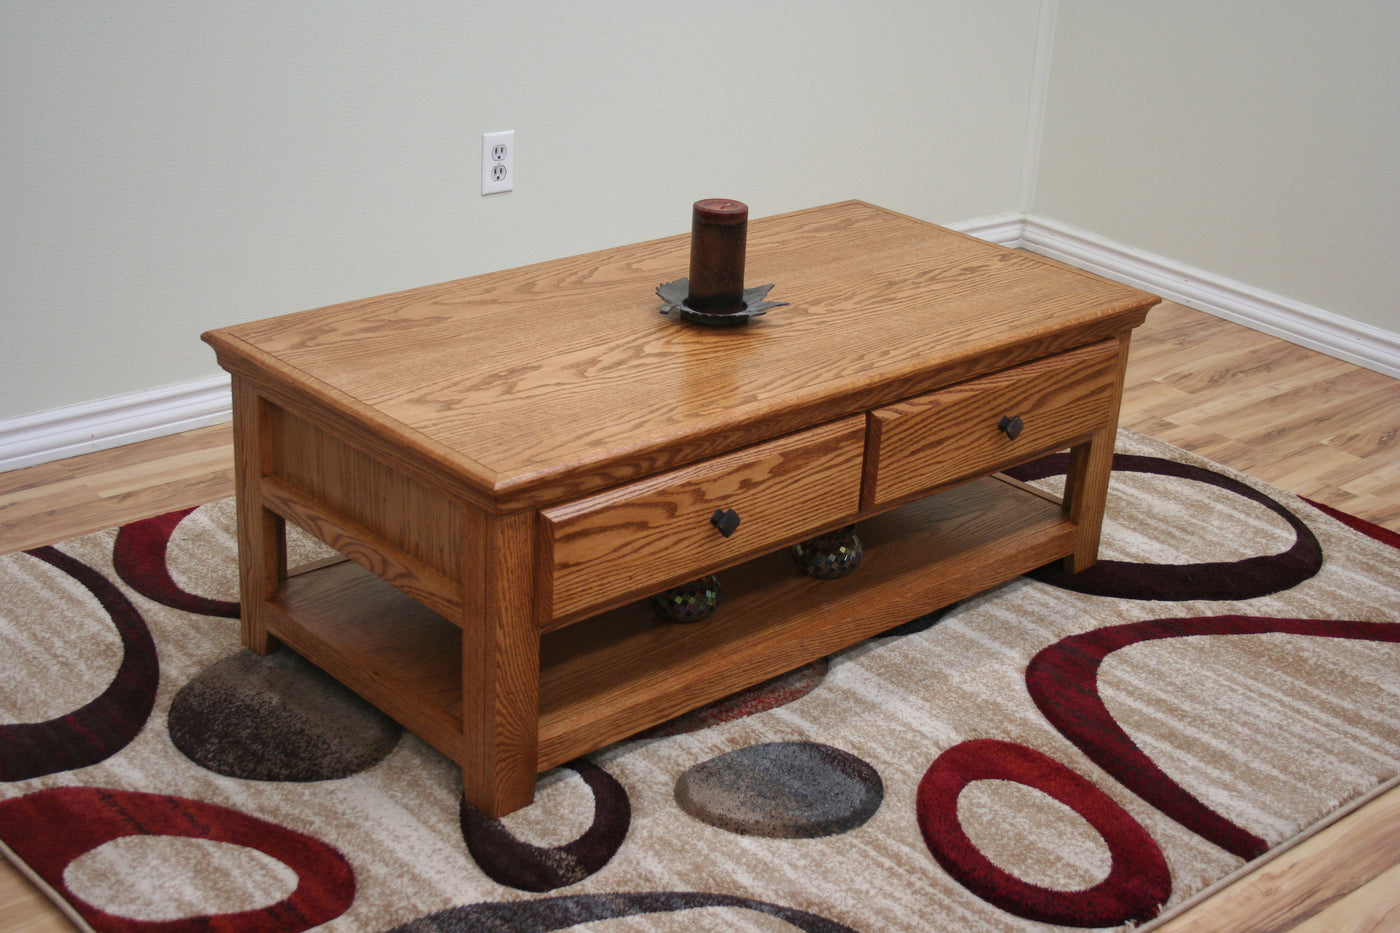 Oak coffee table transitional style jdi home Vogue coffee table